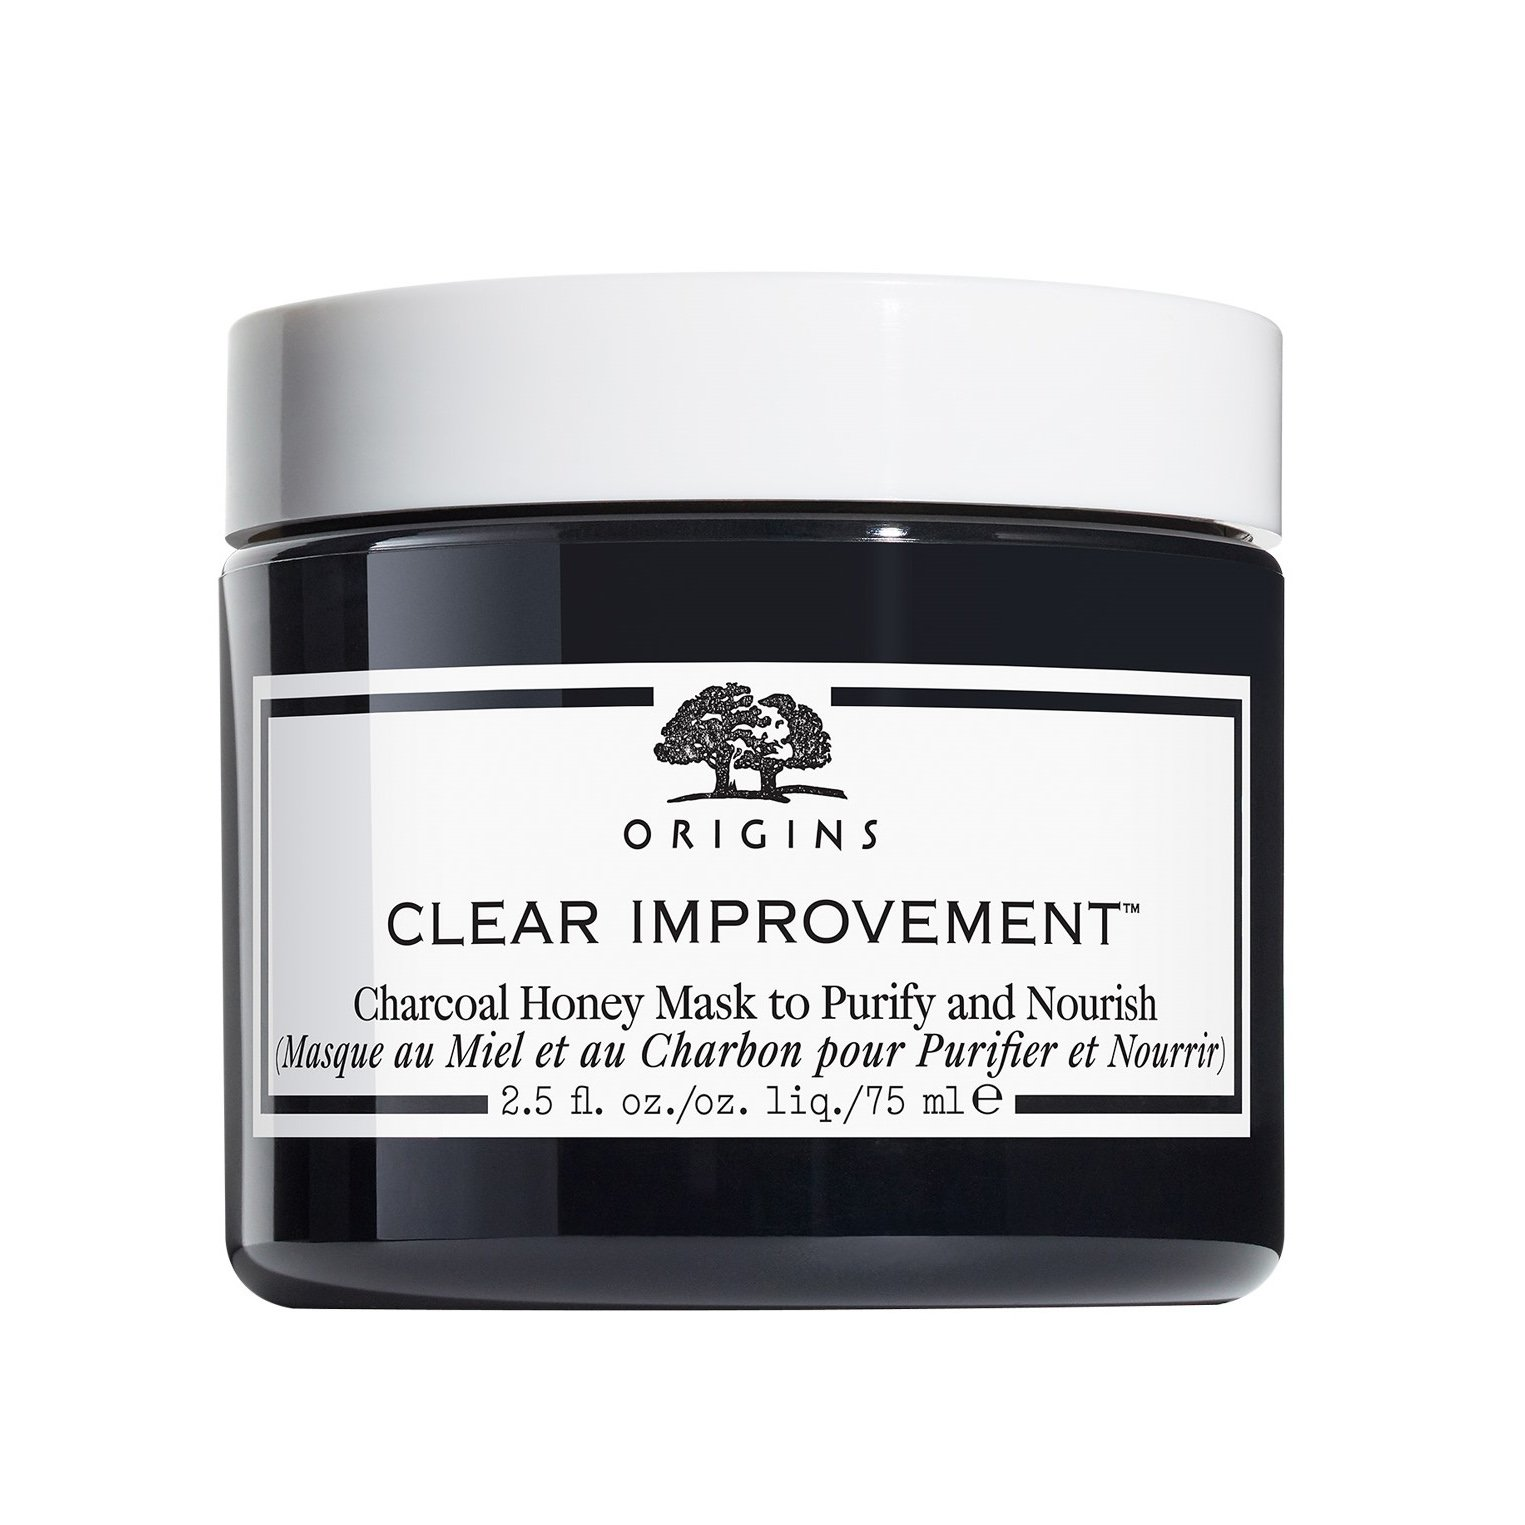 Origins Clear Improvement Charcoal Honey Mask To Purify & Nourish Μάσκα με Ενεργό Άνθρακα & Μέλι για Βαθύ Καθαρισμό & Θρέψη 75ml